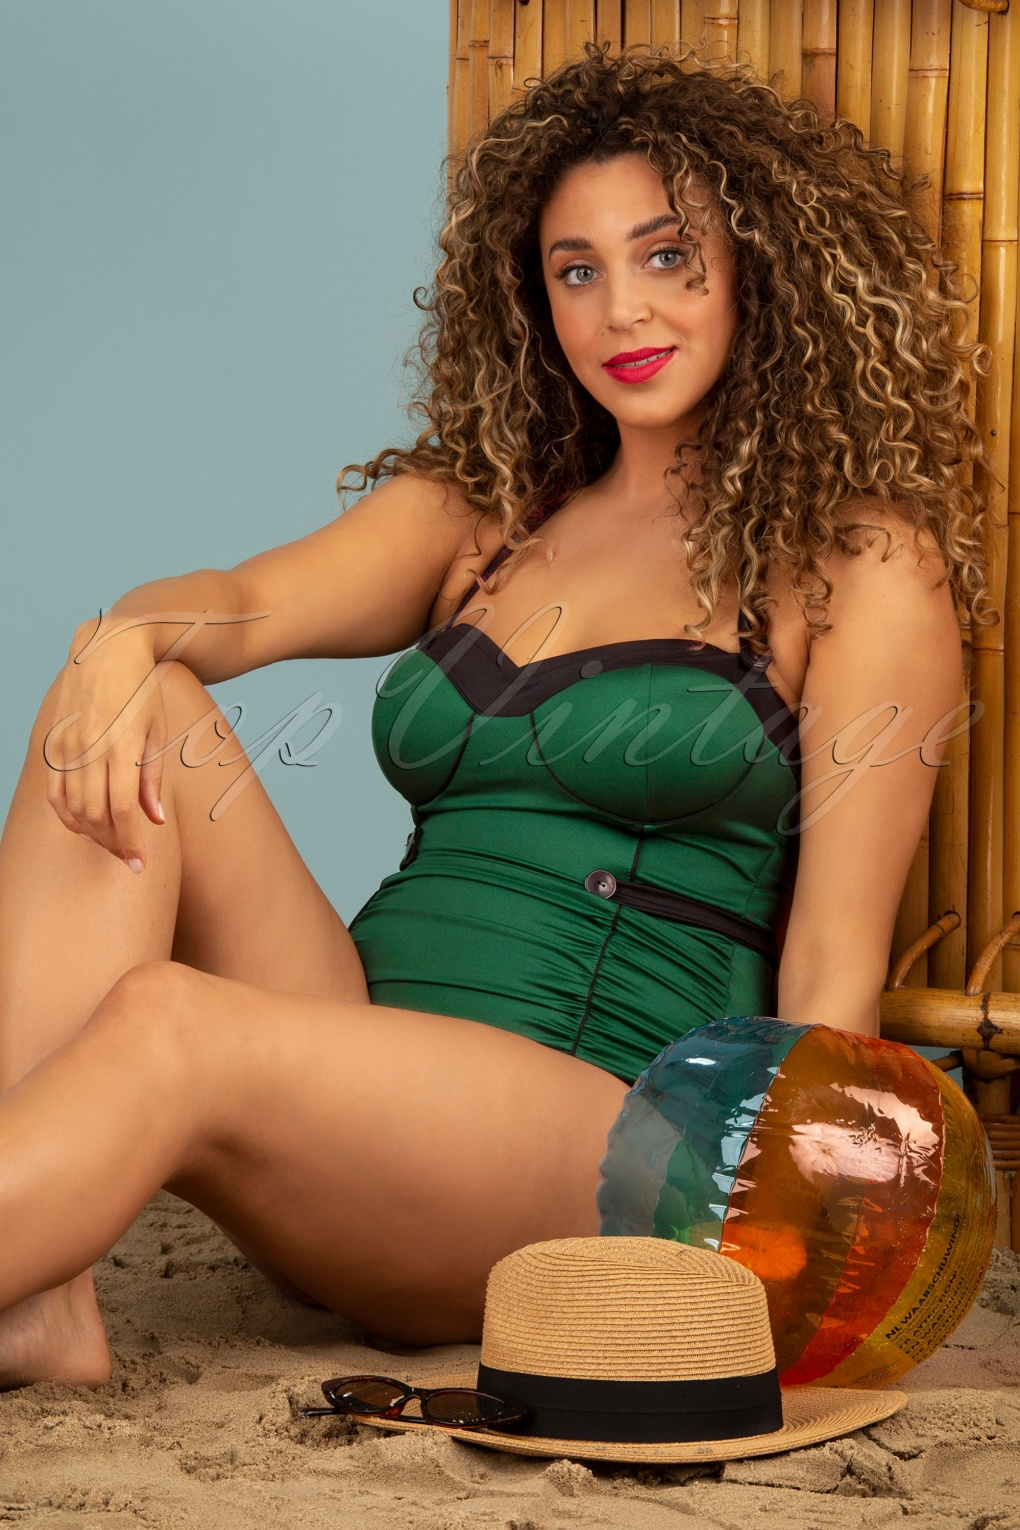 1950s Bathing Suits, Swimsuits History 50s Serena One Piece Swimsuit in Glossy Dark Green £99.52 AT vintagedancer.com